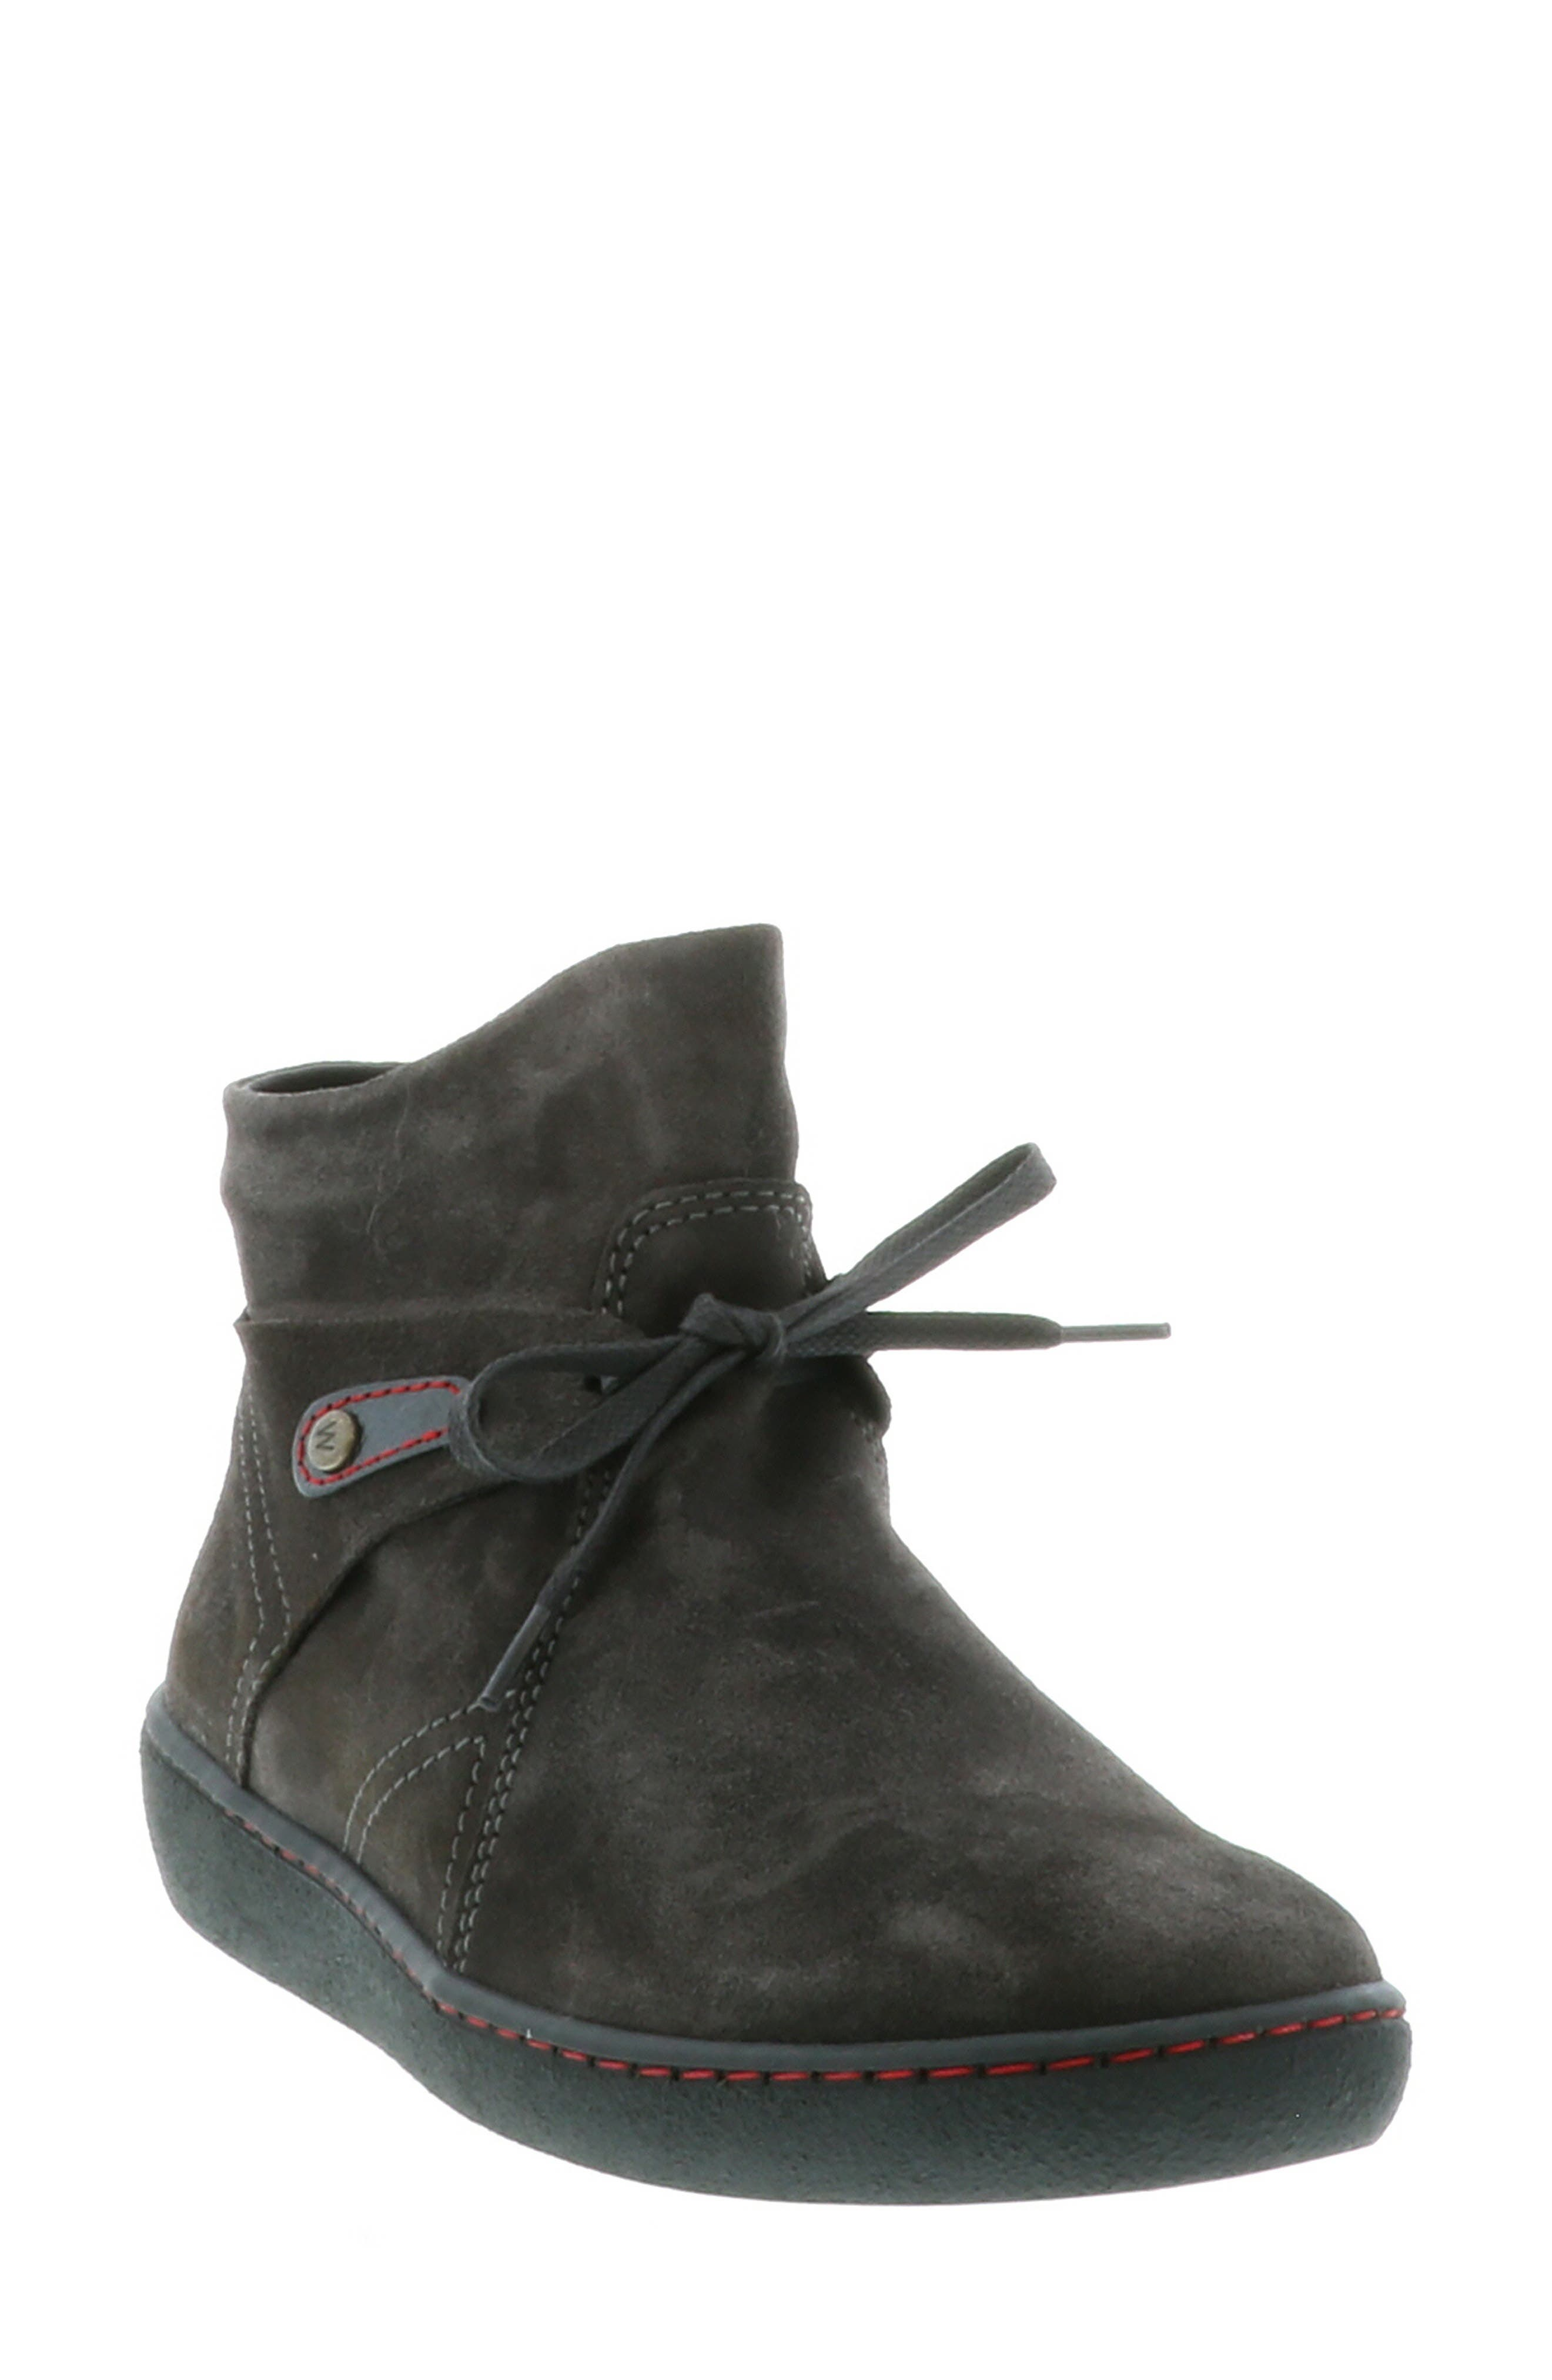 Wolky Mahal Bootie - Grey